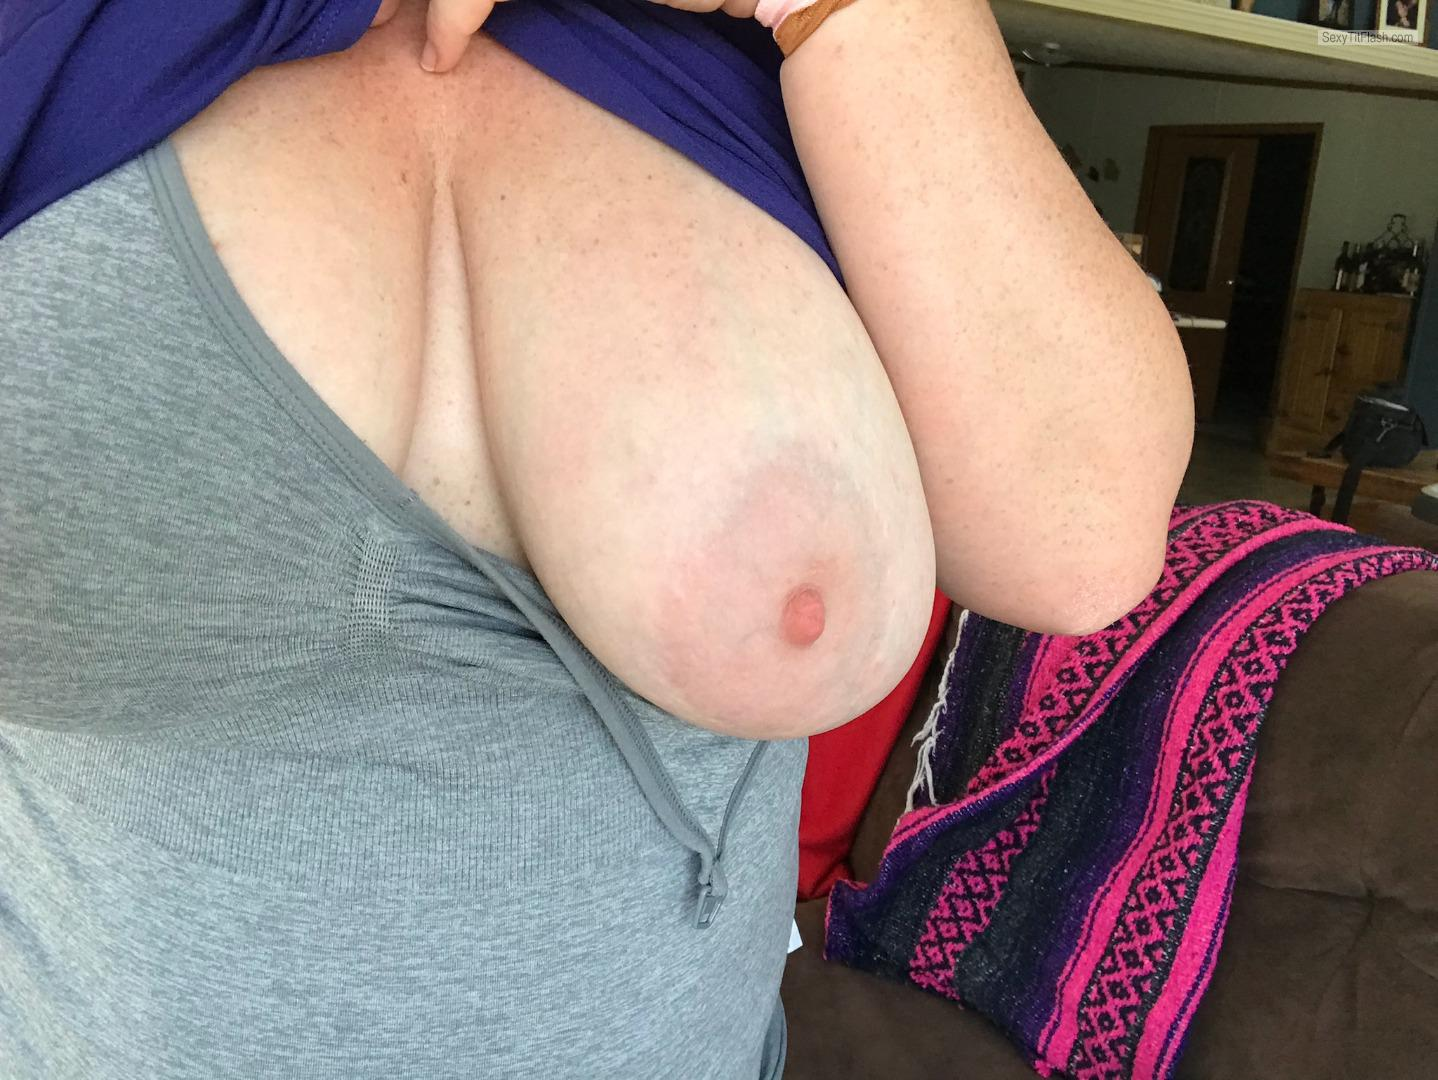 Tit Flash: Wife's Big Tits (Selfie) - Red Head Wife from United States